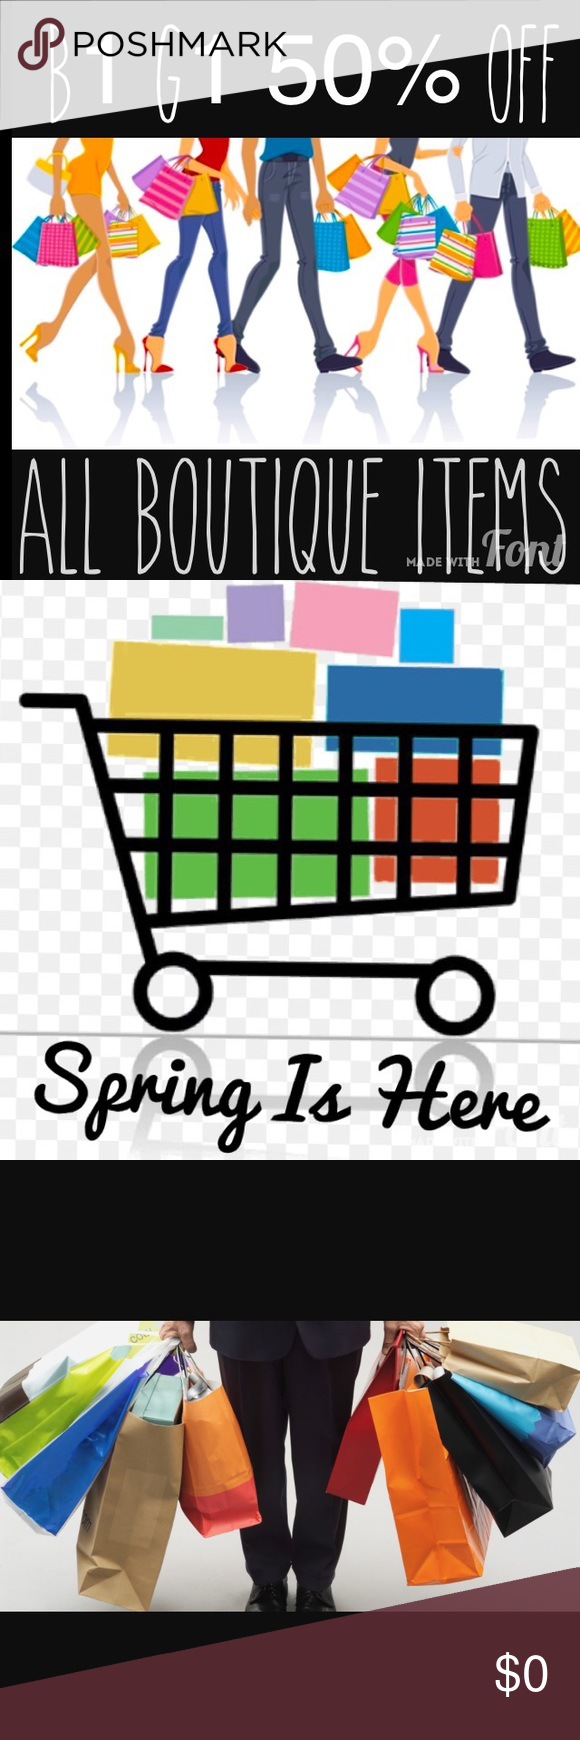 B1 G1 50% OFF ALL BOUTIQUE ITEMS!! LIMITED TIME!! ALL BOUTIQUE ITEMS B1G1 50% OFF• No other offers will be accepted on boutique items during this sale• Comment under each item you want and I will make a separate listing for you• Any questions please ask!!• Other